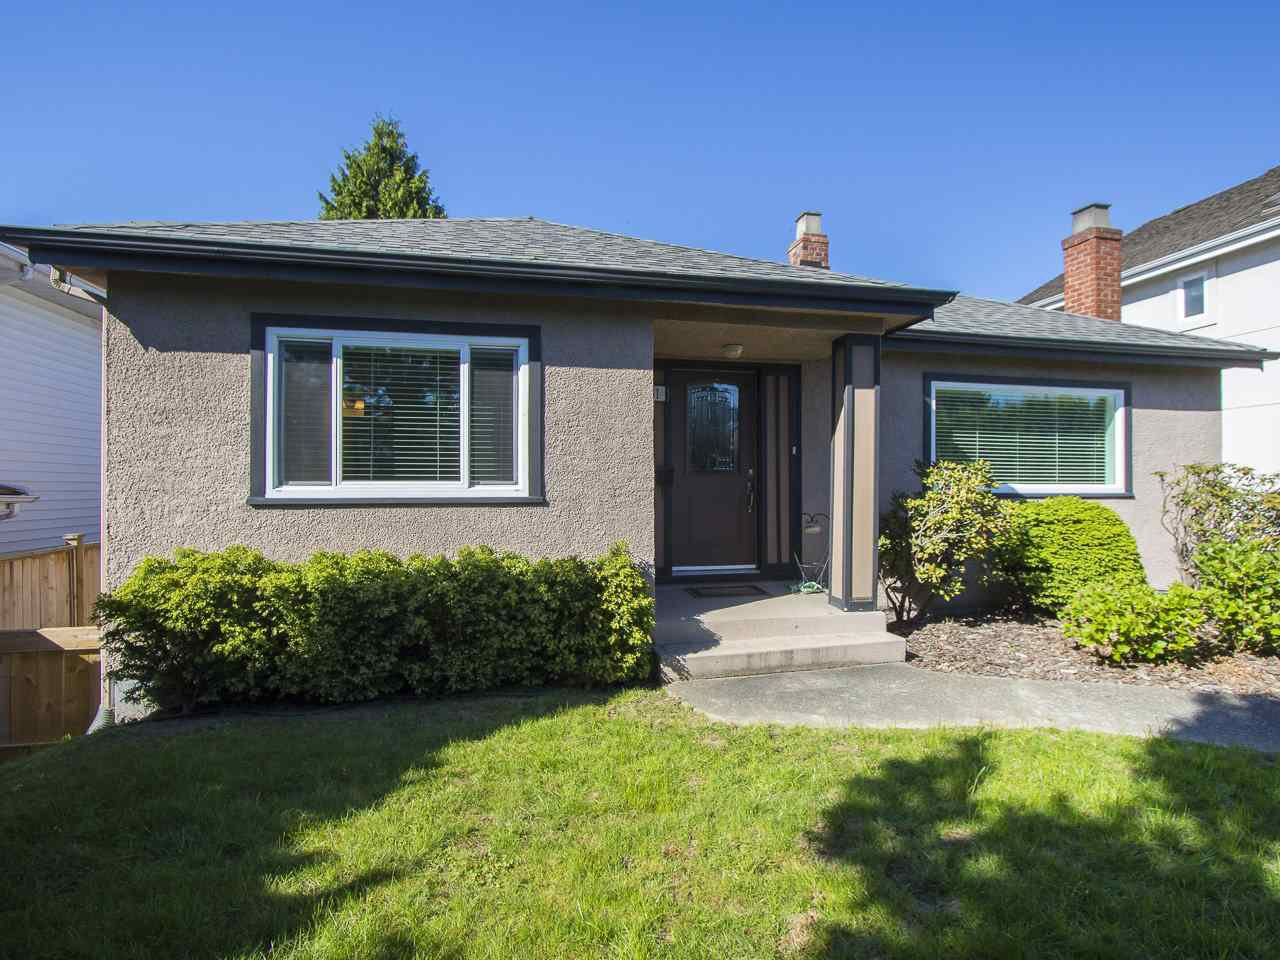 Photo 5: Photos: 731 W KING EDWARD AVENUE in Vancouver: Cambie House for sale (Vancouver West)  : MLS®# R2204992